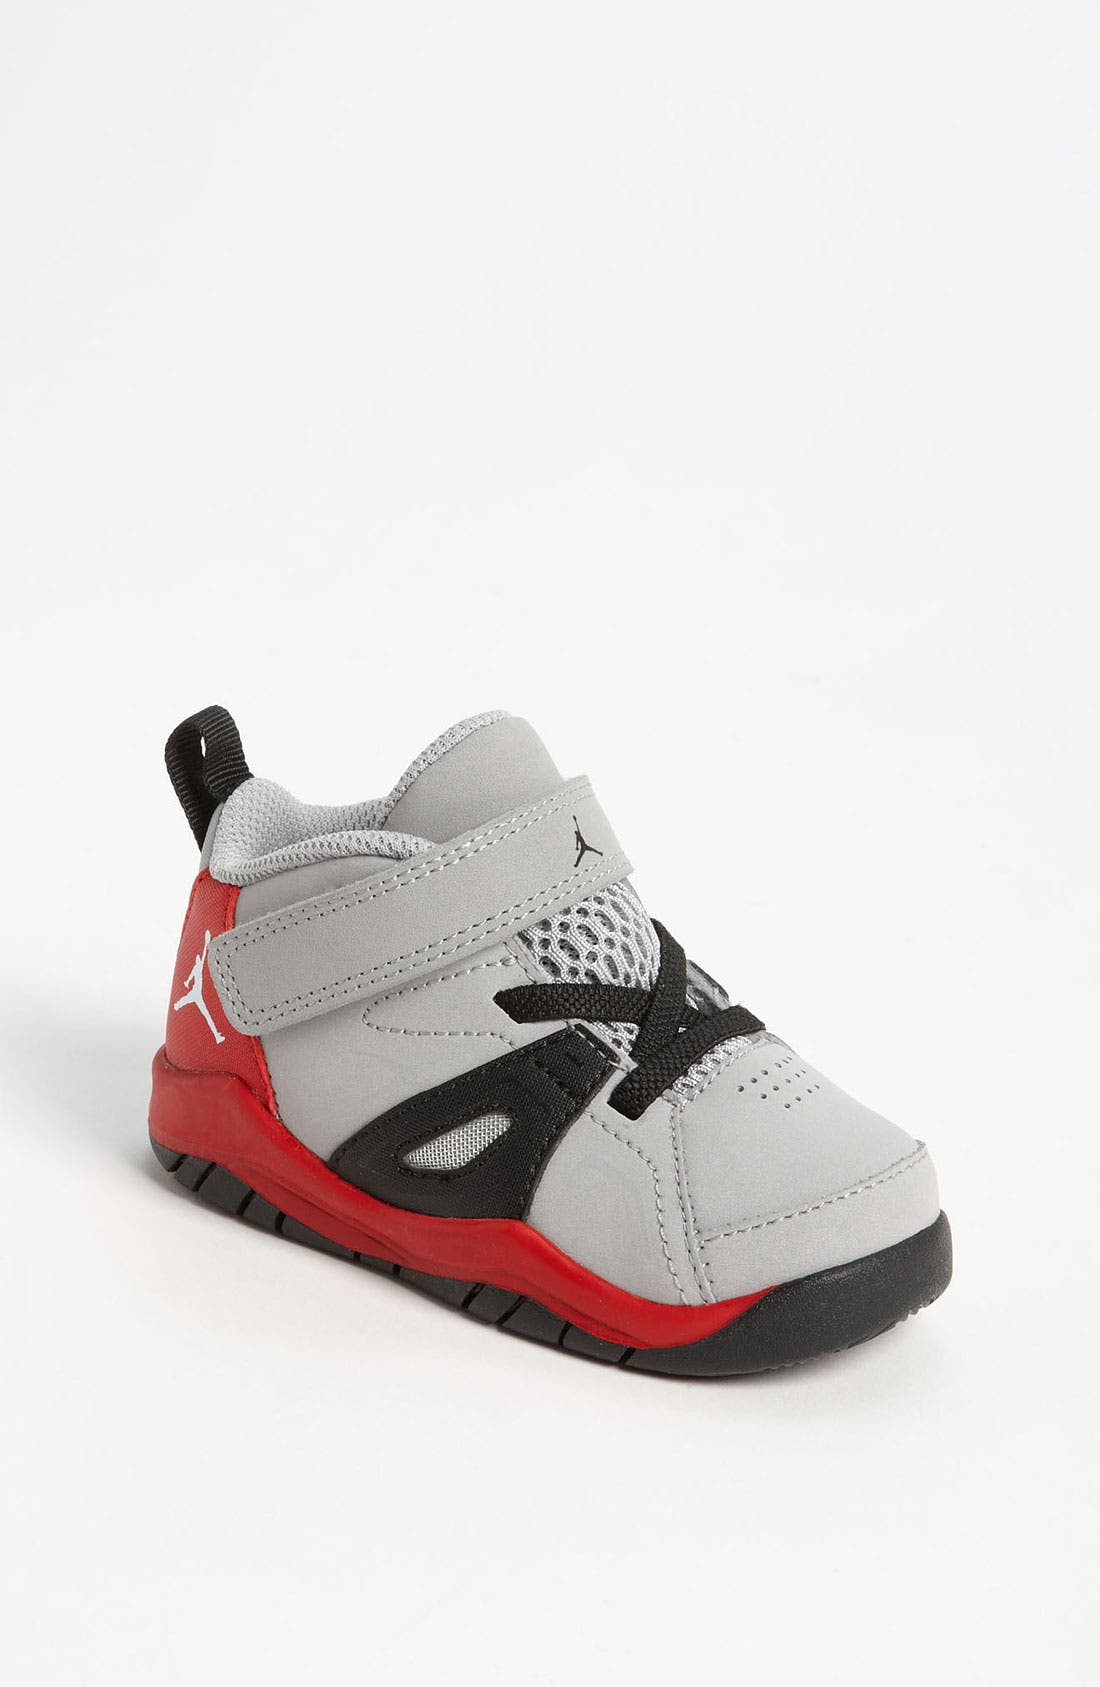 Alternate Image 1 Selected - Nike 'Jordan Ace 23' Basketball Shoe (Baby, Walker & Toddler)